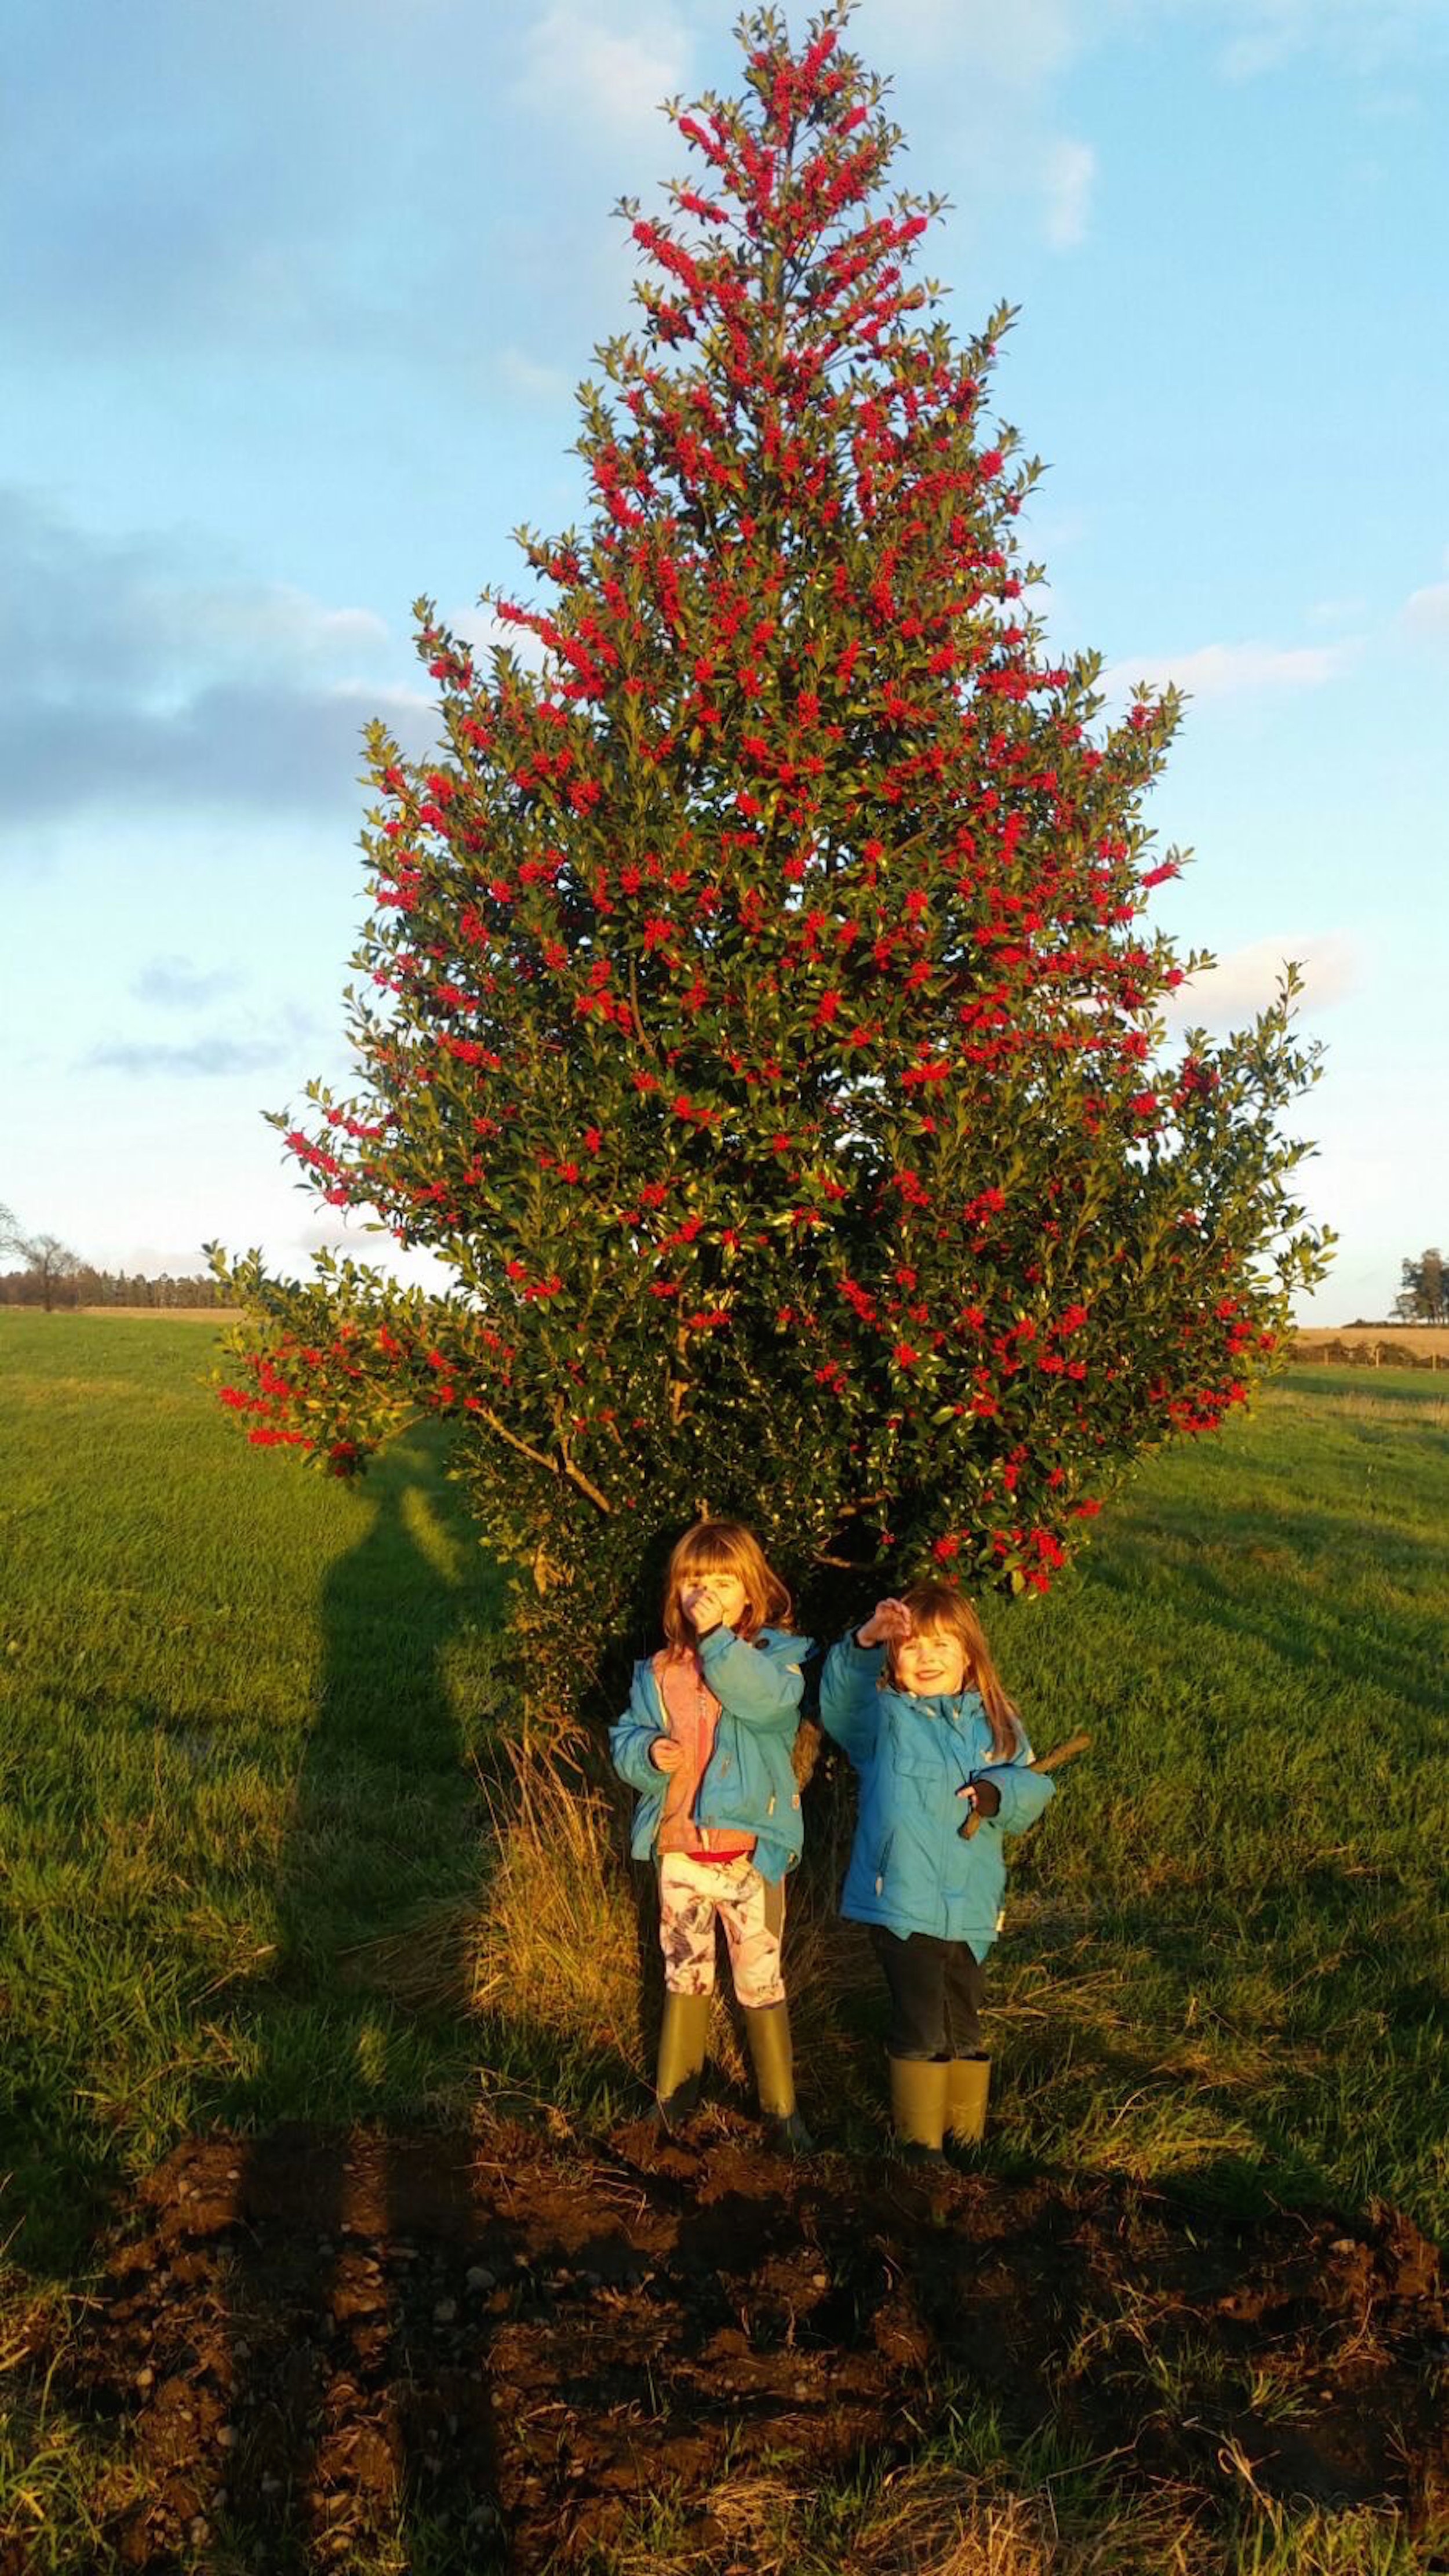 Members of the Character Christmas Trees team taking some well-needed R&R under a fruiting holly.